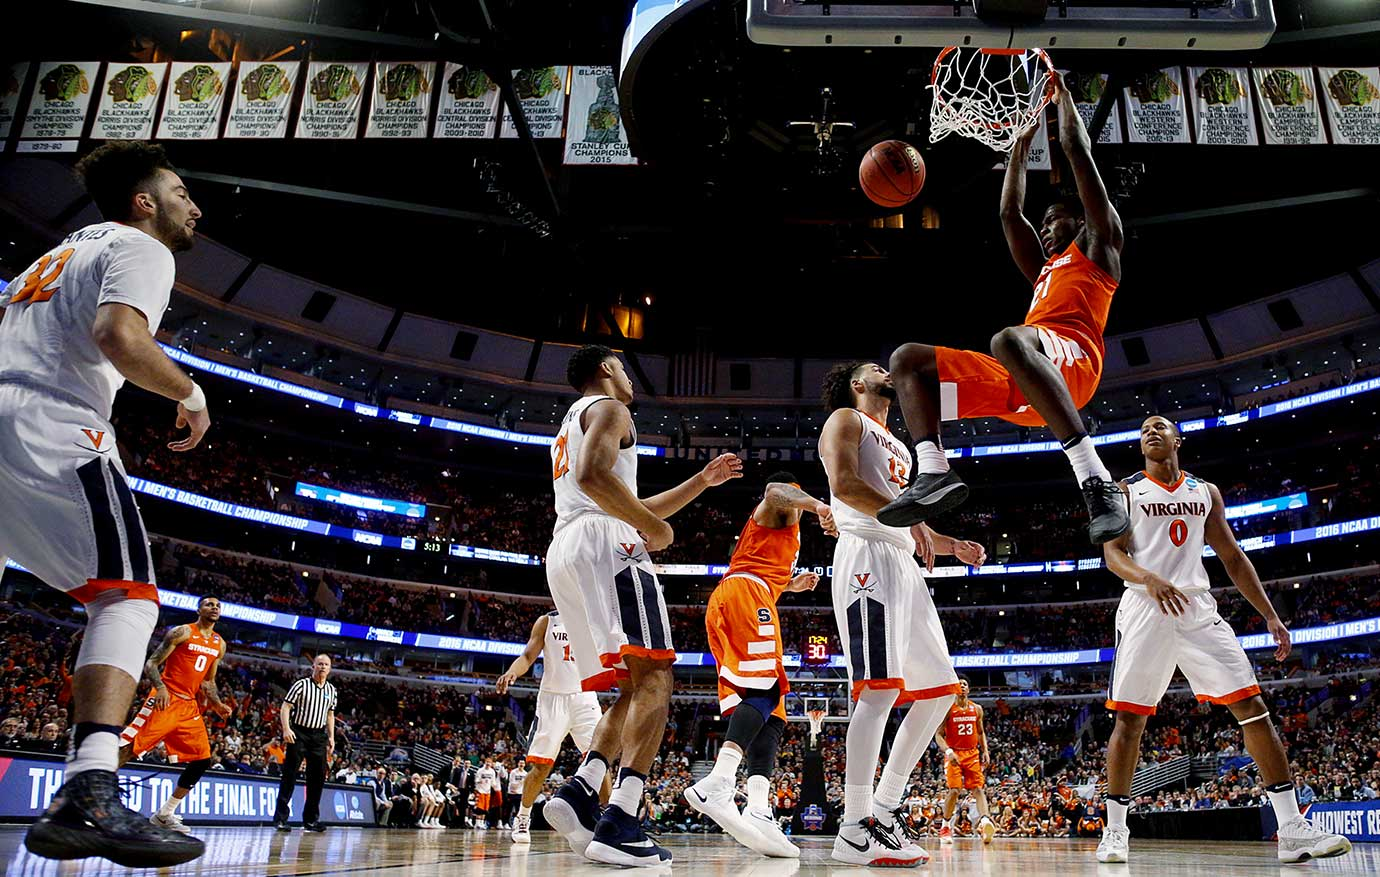 Tyler Roberson had 10 points and eight rebounds for Syracuse, which won the rebounding battle 36-34.